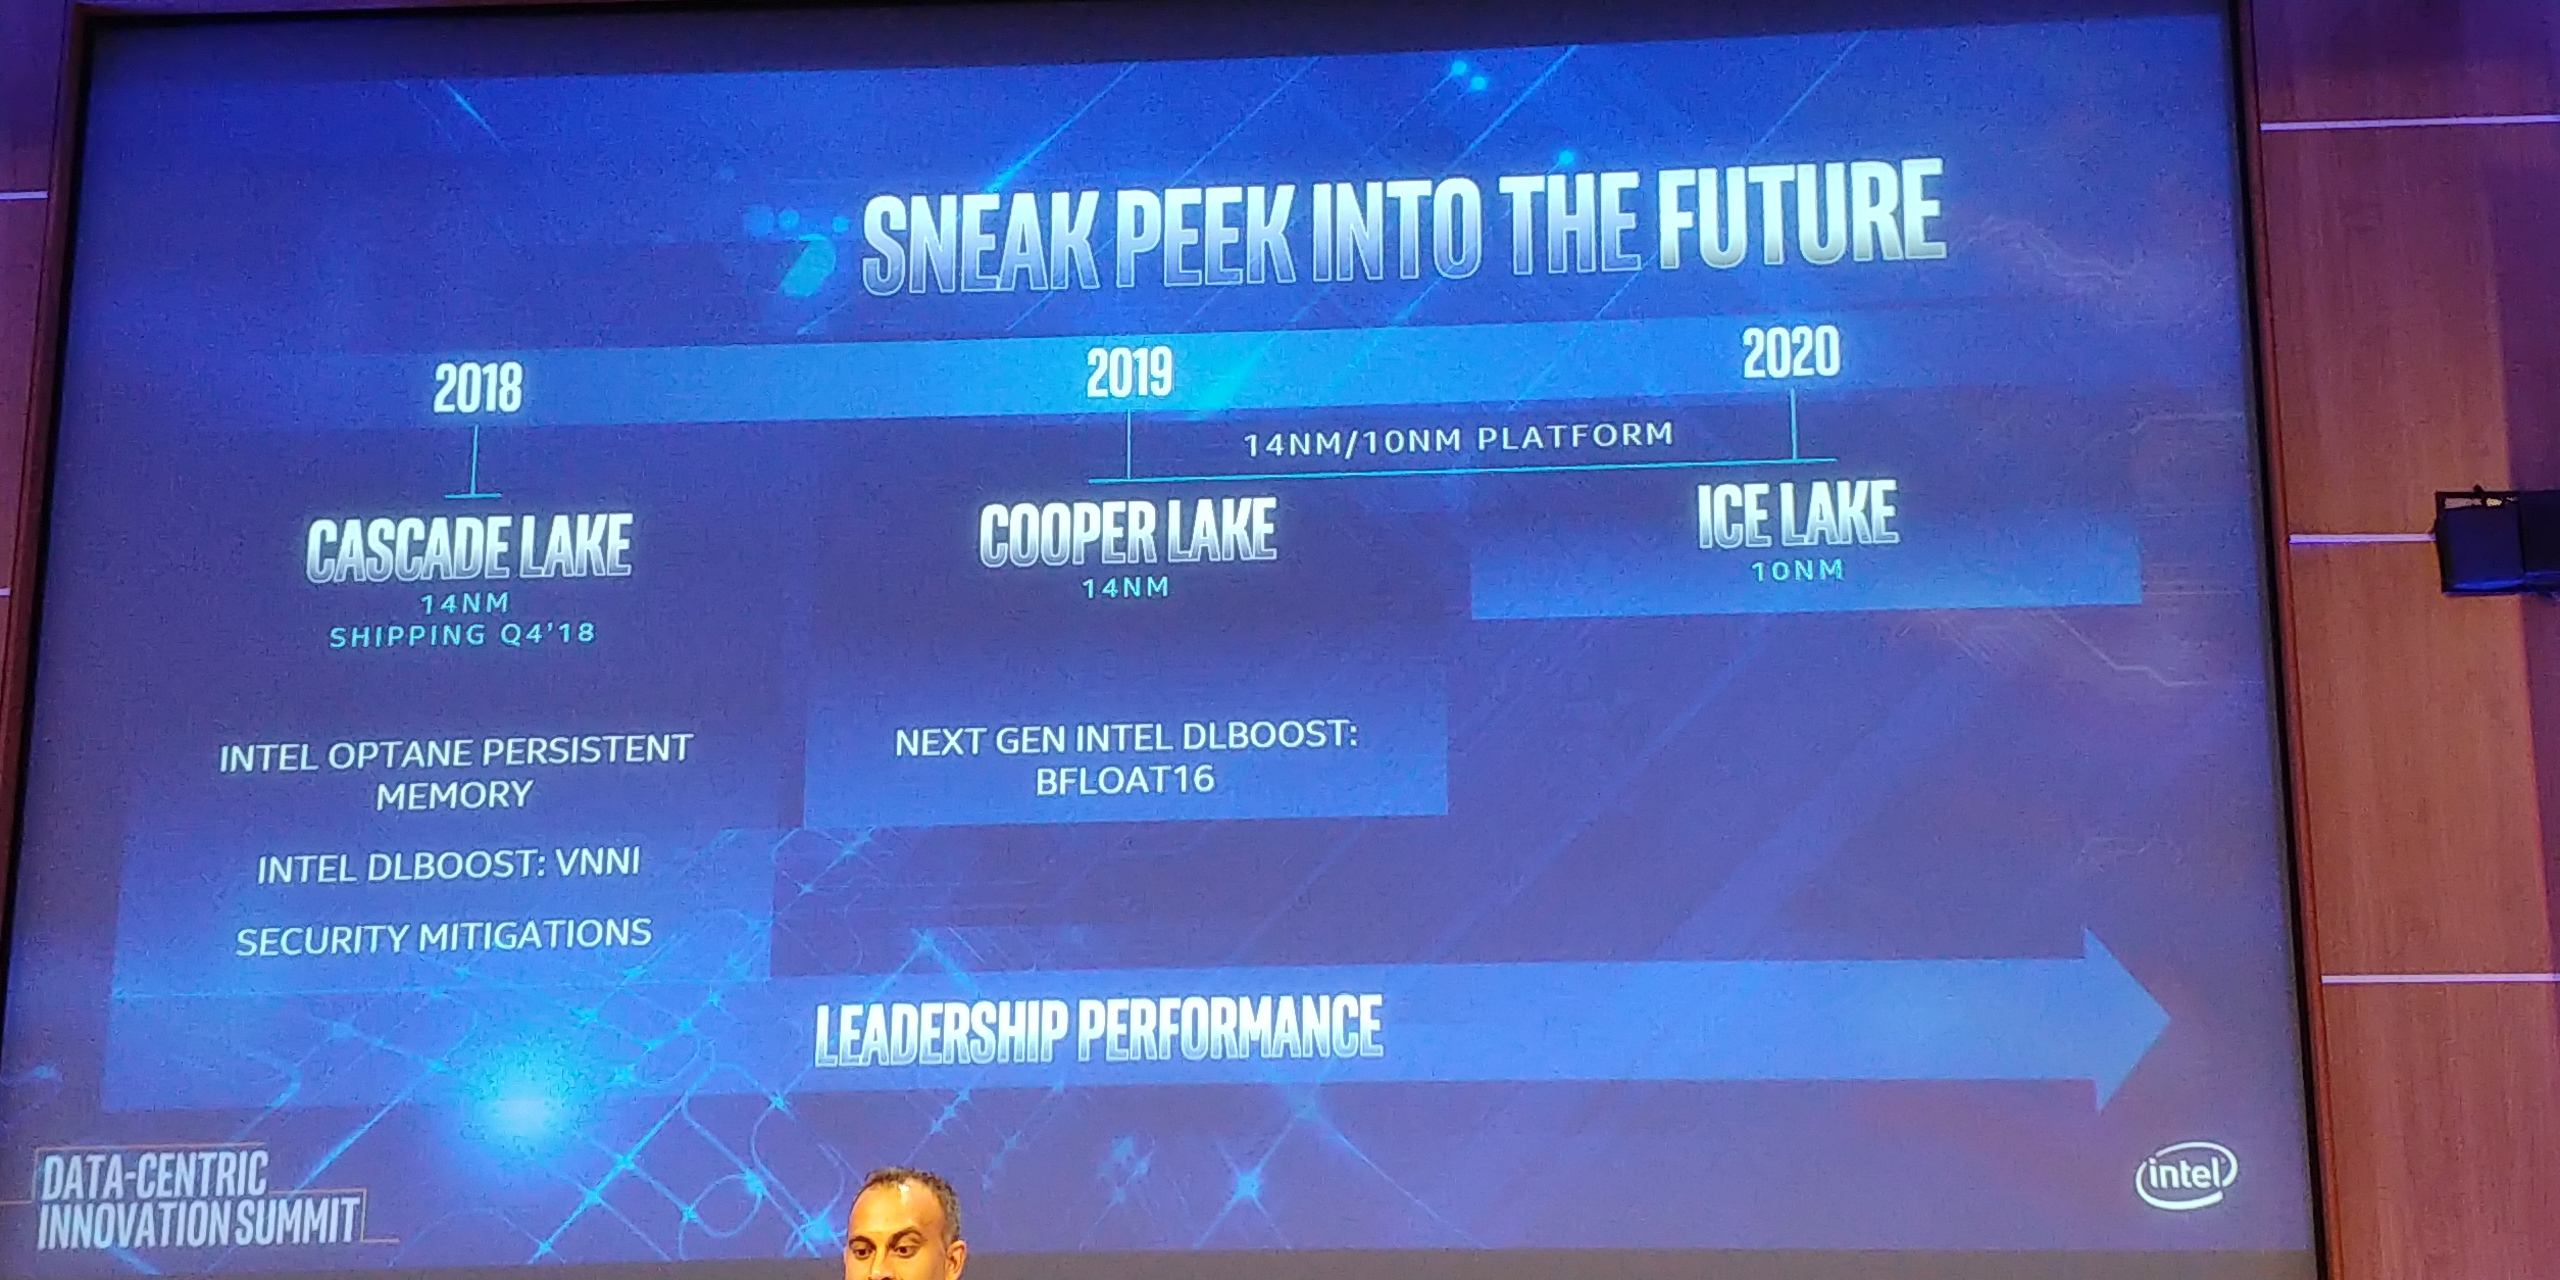 Best Alliance Server 2020 Intel Server Roadmap: 14nm Cooper Lake in 2019, 10nm Ice Lake in 2020